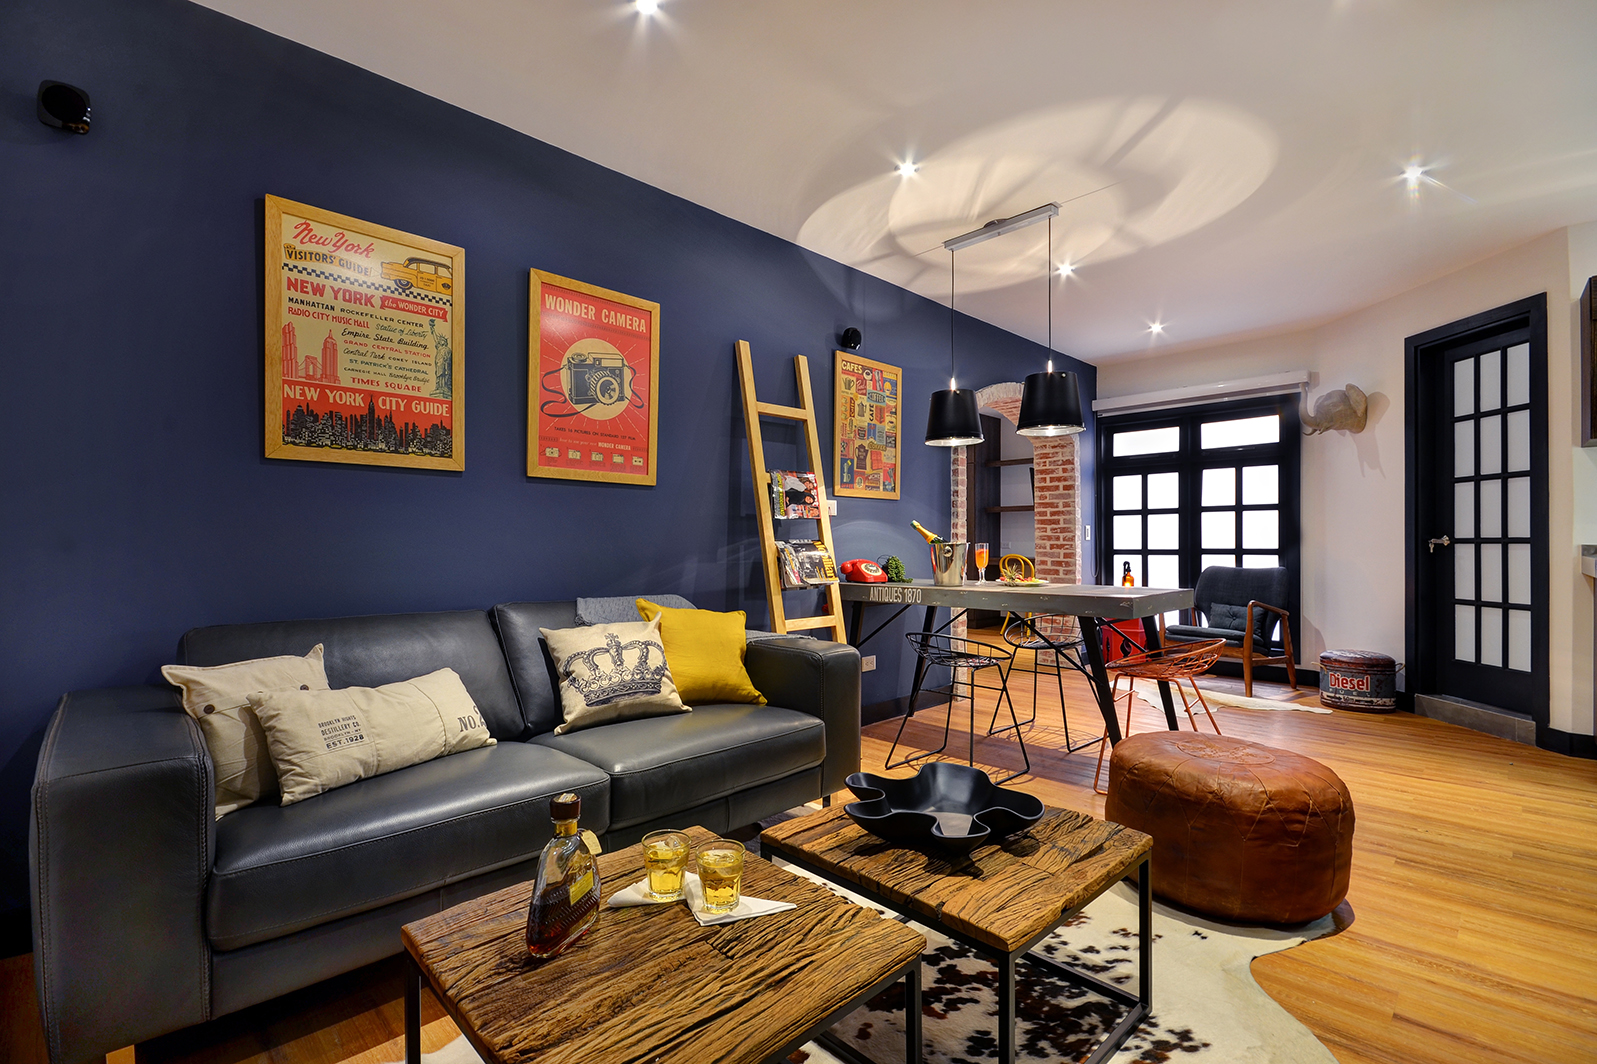 home ambient lighting. Ambient Living Room2 Lighting. Luxury Lighting Advice From A Professional Interior Photographer - The Home B